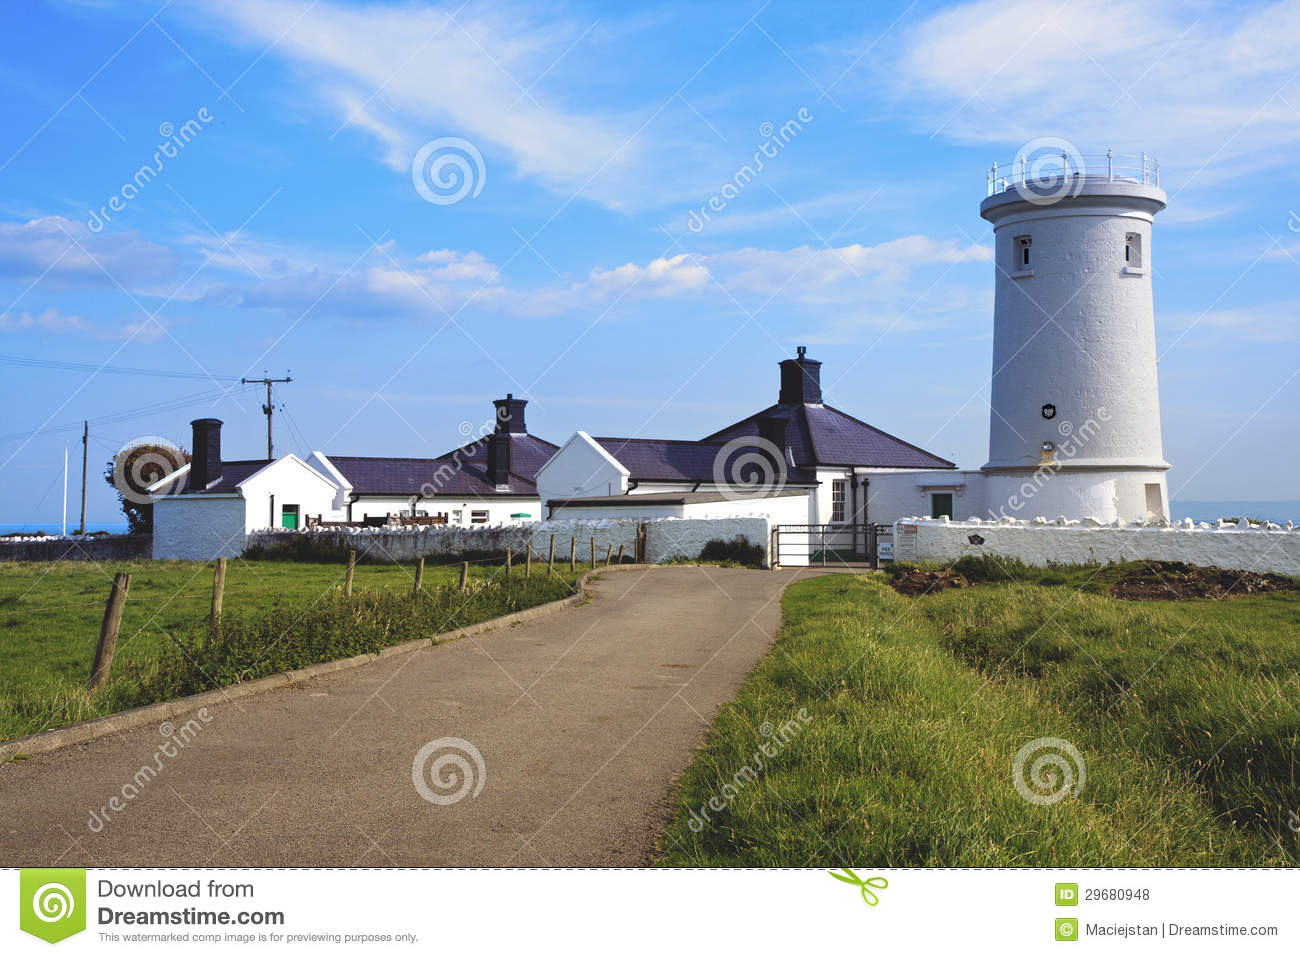 A lighthouse - Monkash, Wales